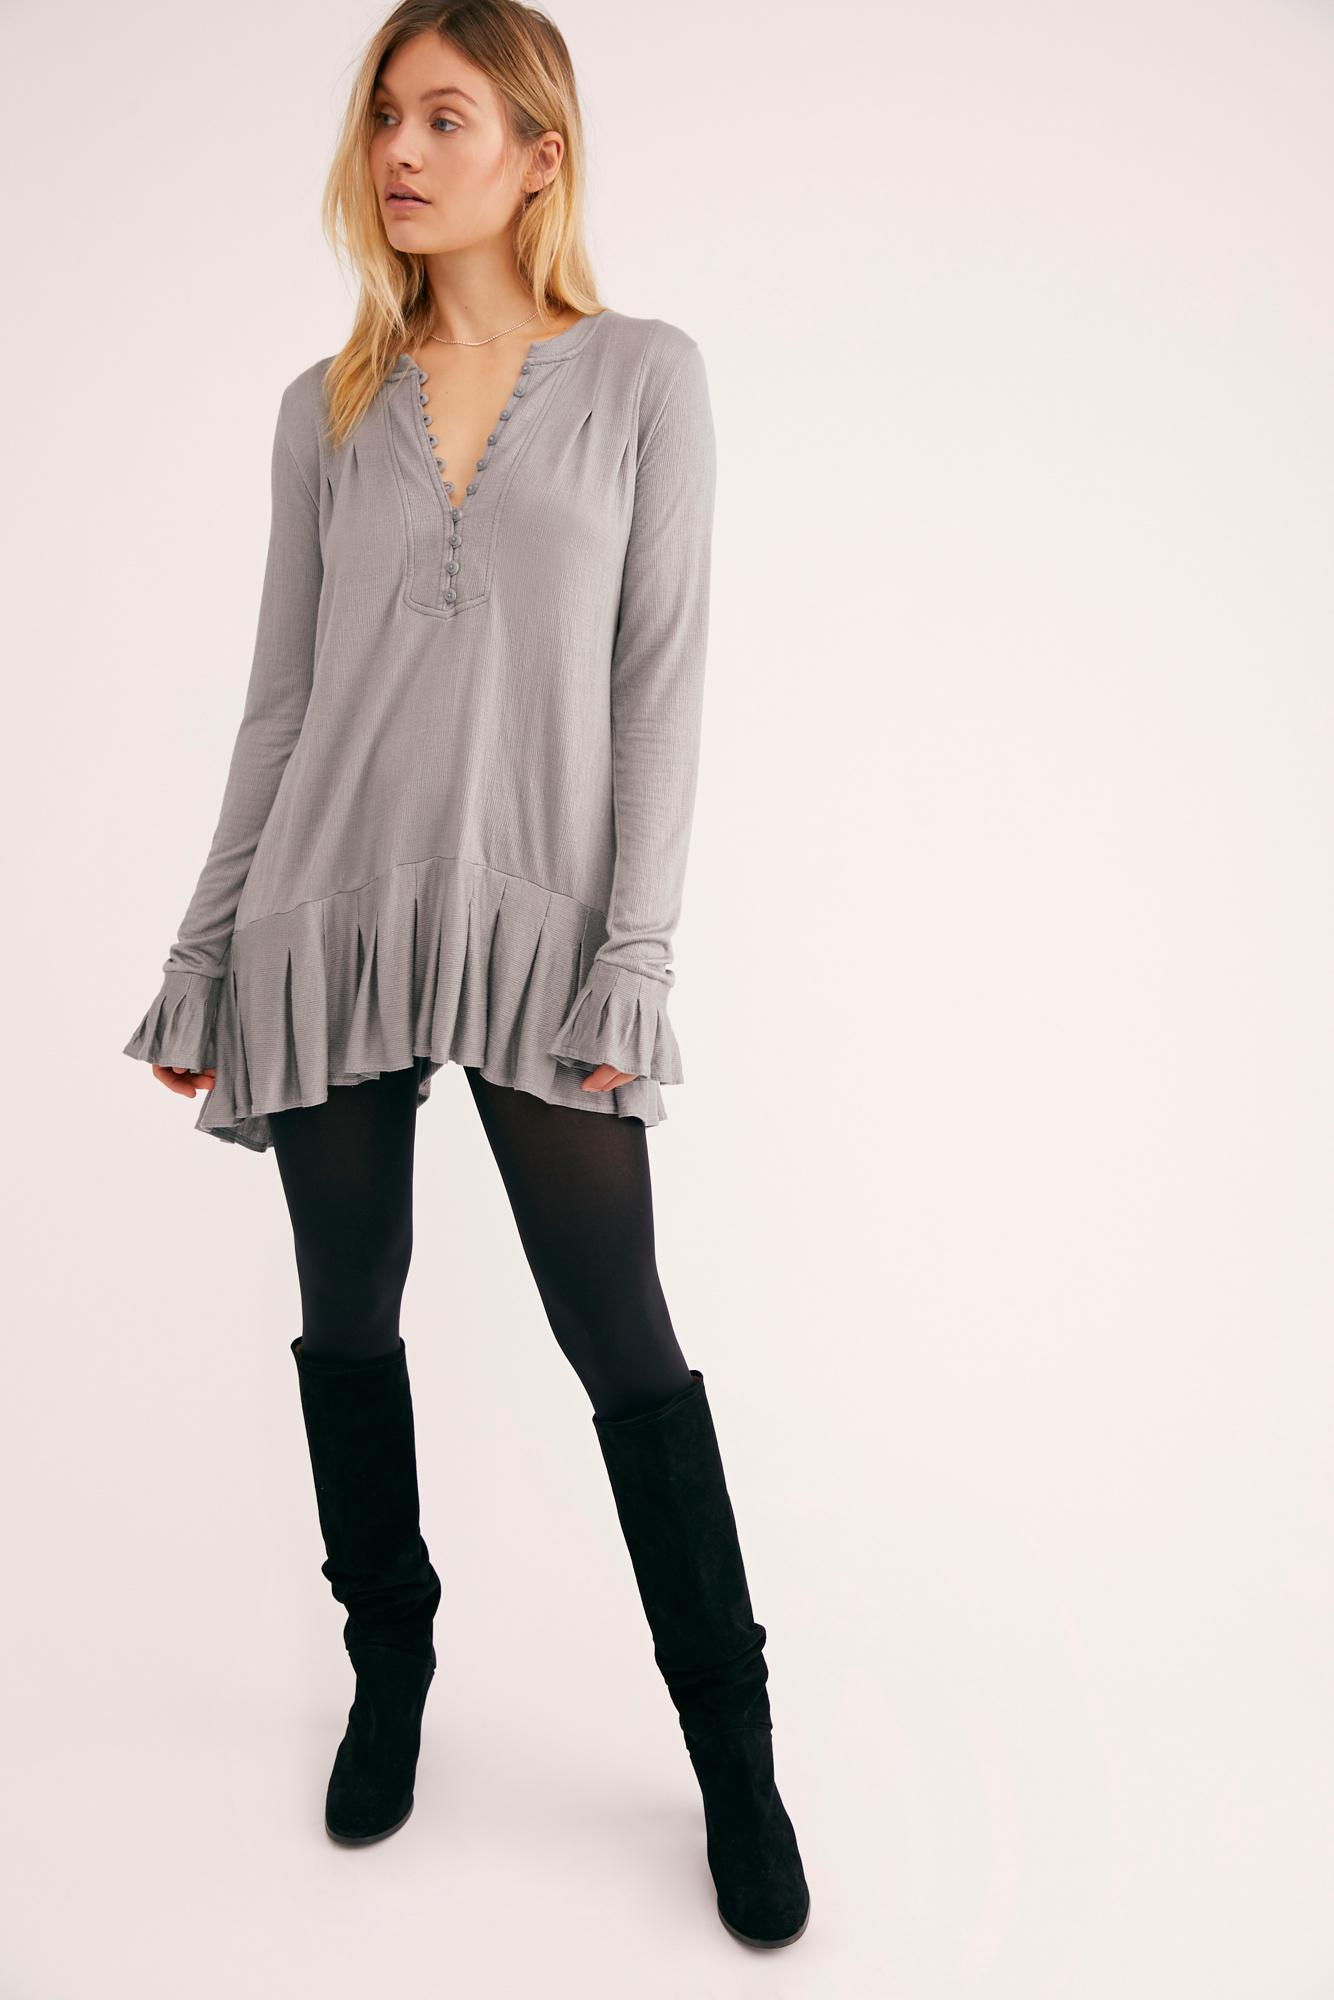 88a0af3f611 Free People Your Girl Tunic in Gray - Lyst